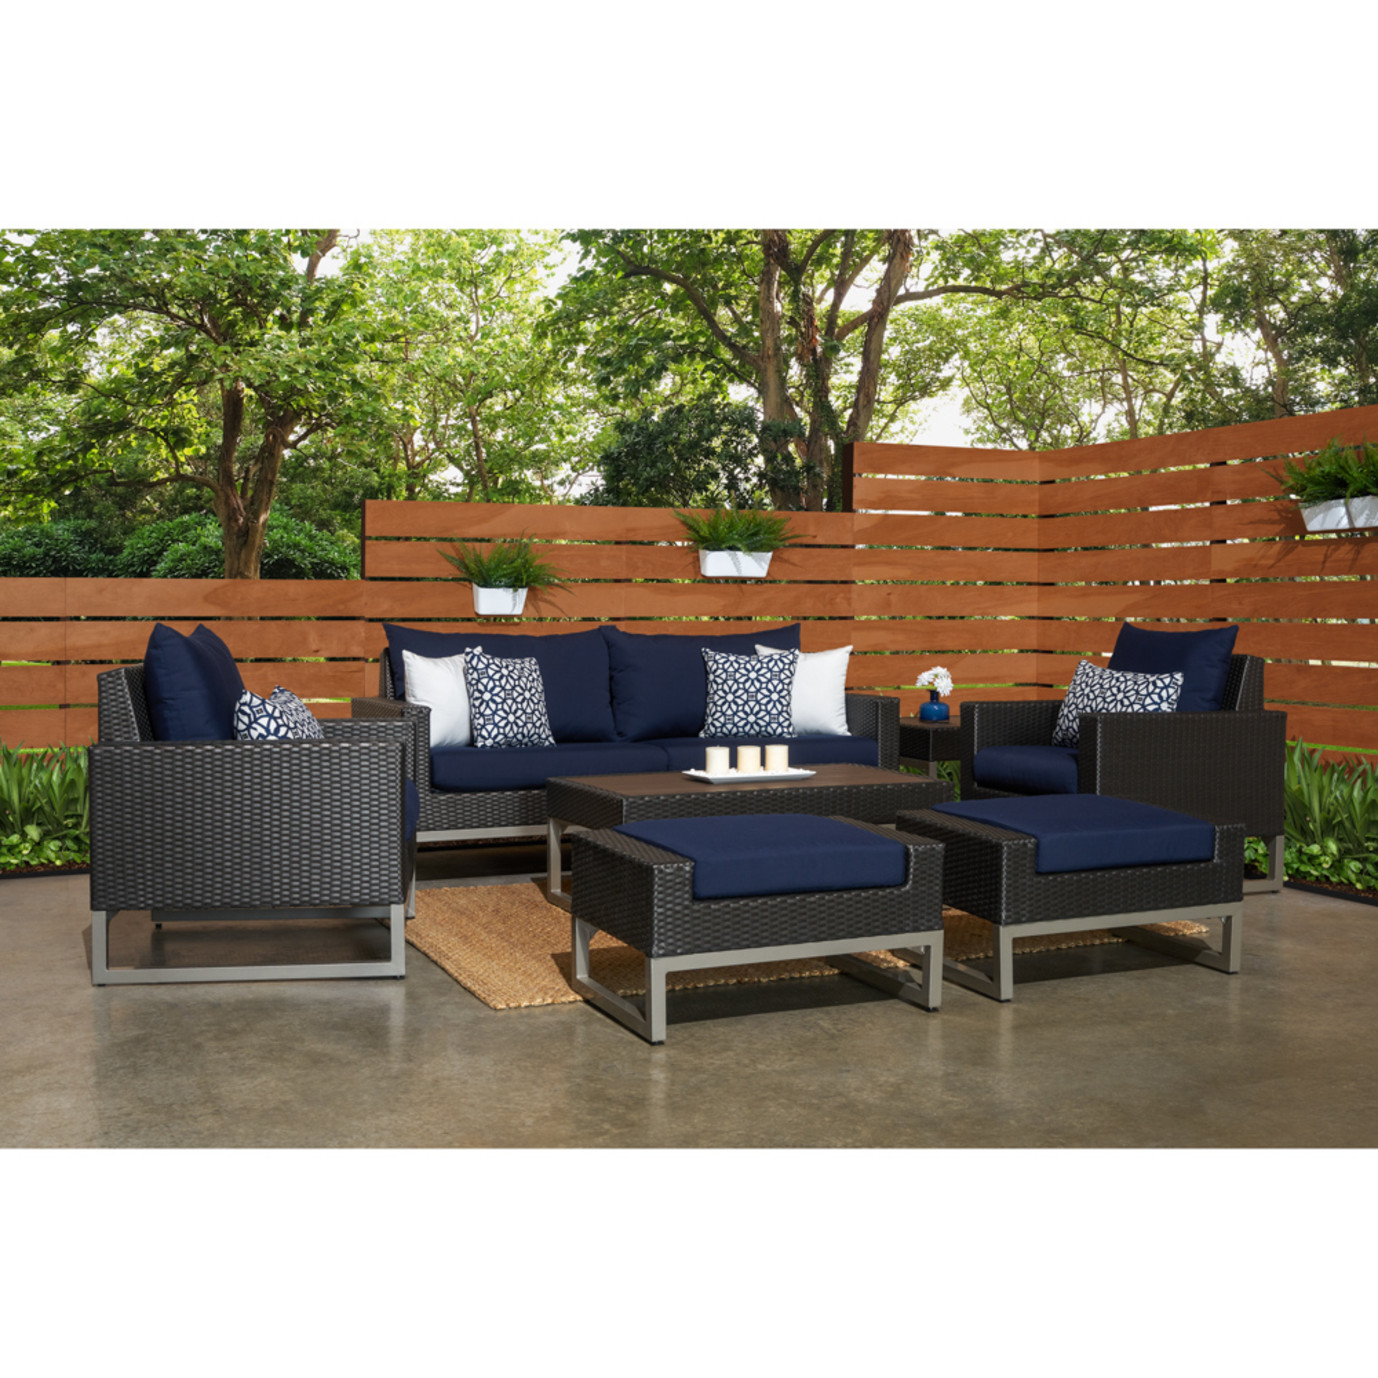 Milo™ Espresso 7pc Deep Seating Set -Navy Blue